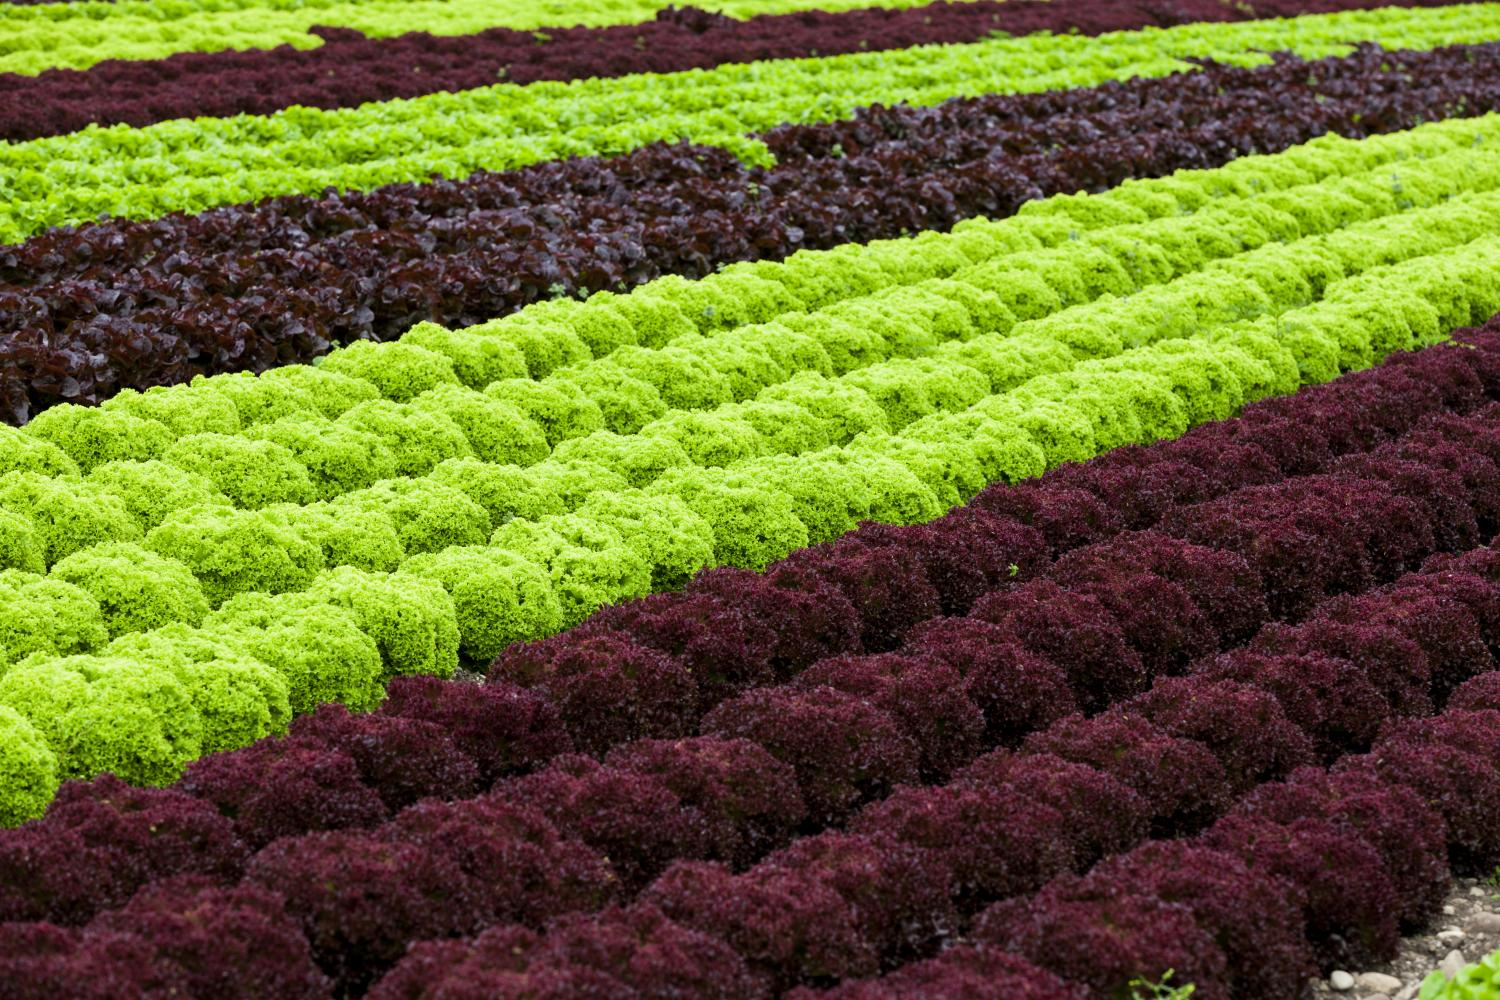 Lettuce Quality Is Improved By Modifying Its Growing Conditions